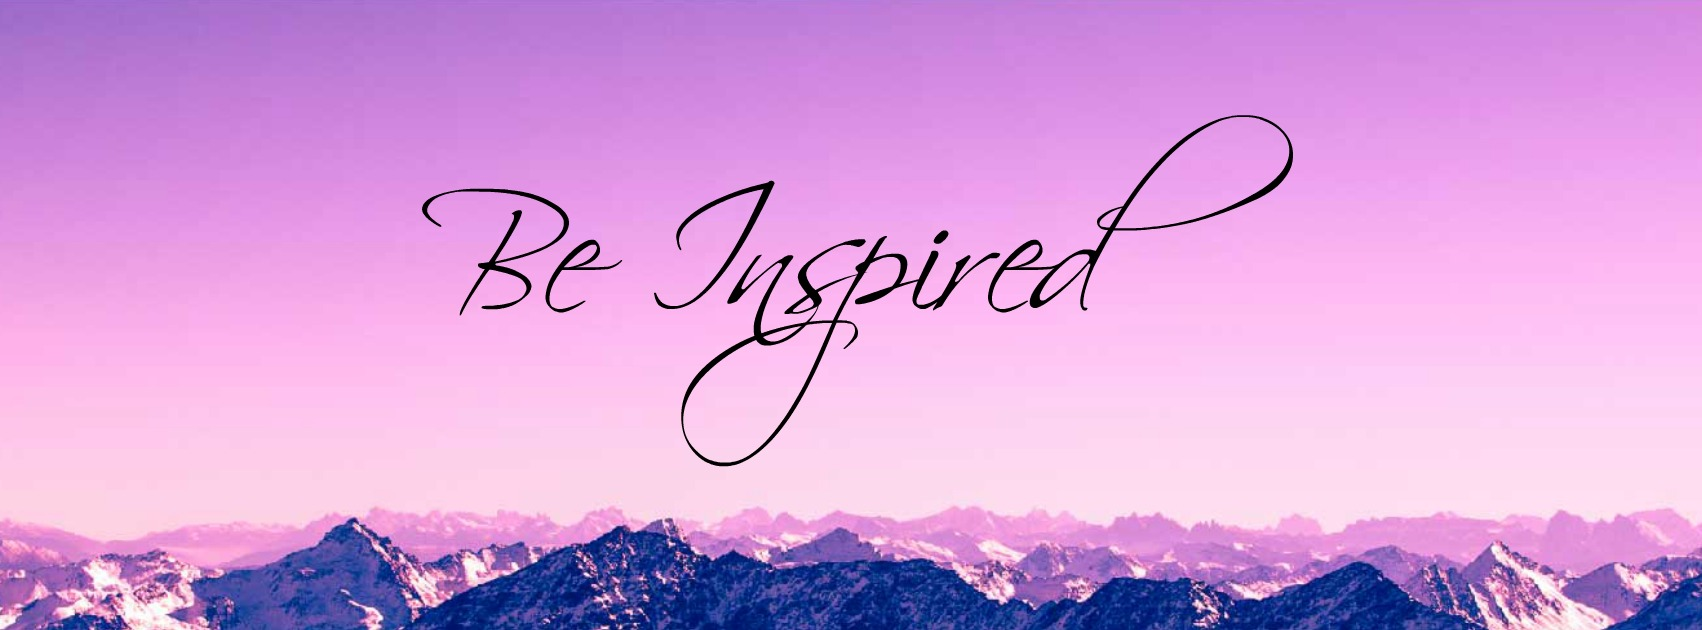 Be inspired website header